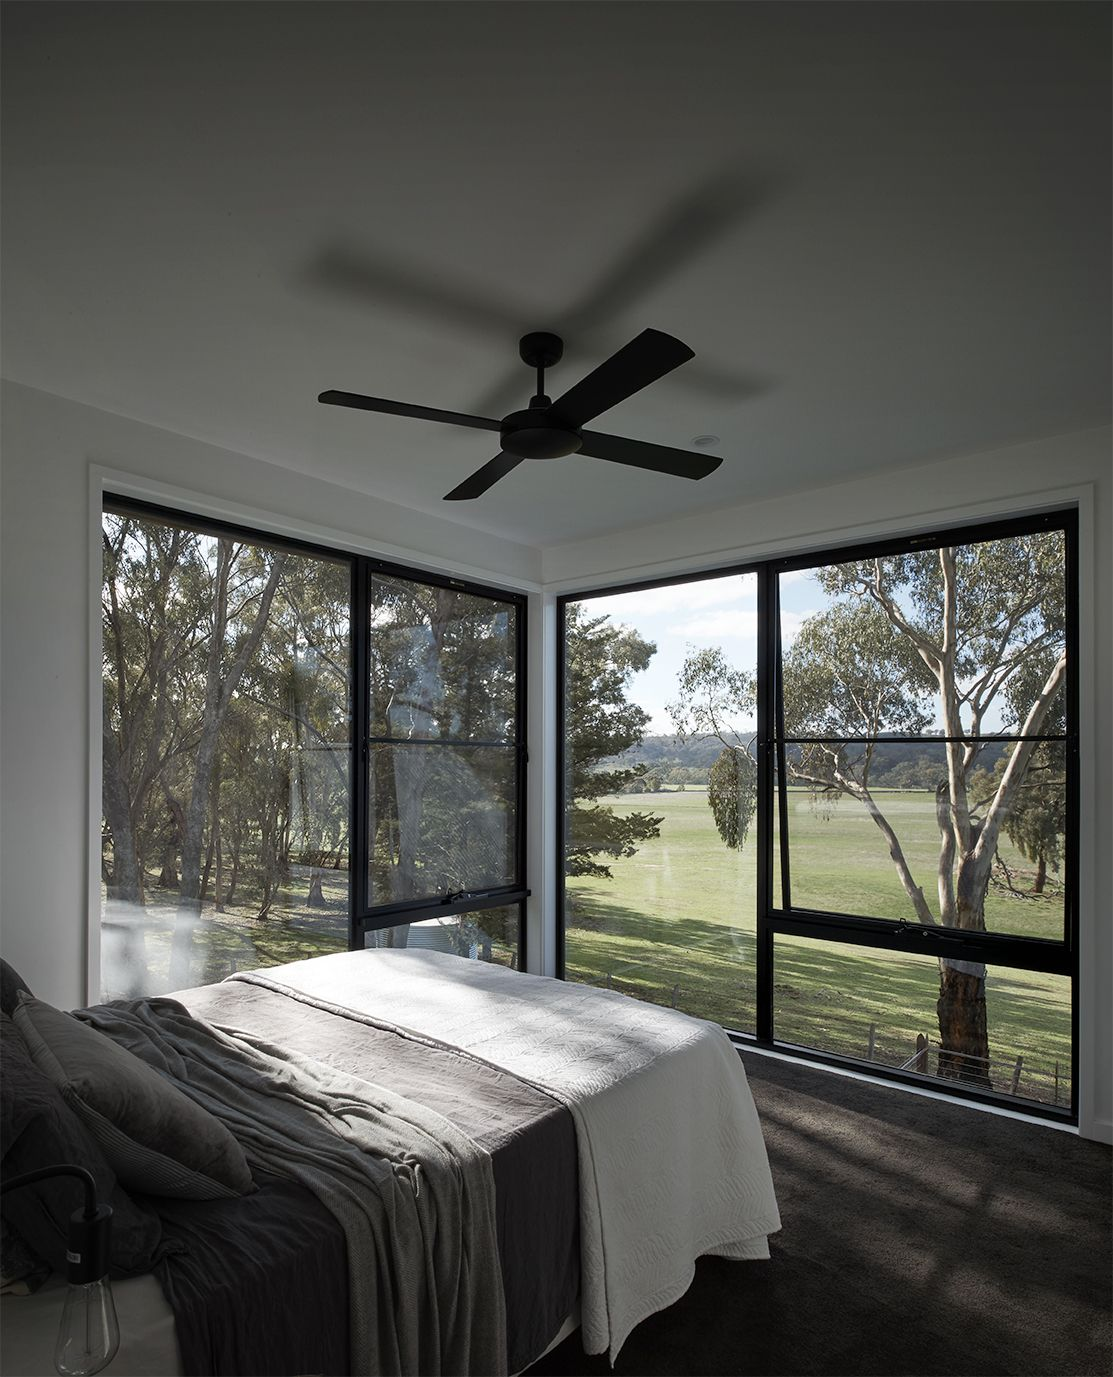 Aluminium Awning Windows Are A Pleasant Addition To The Home